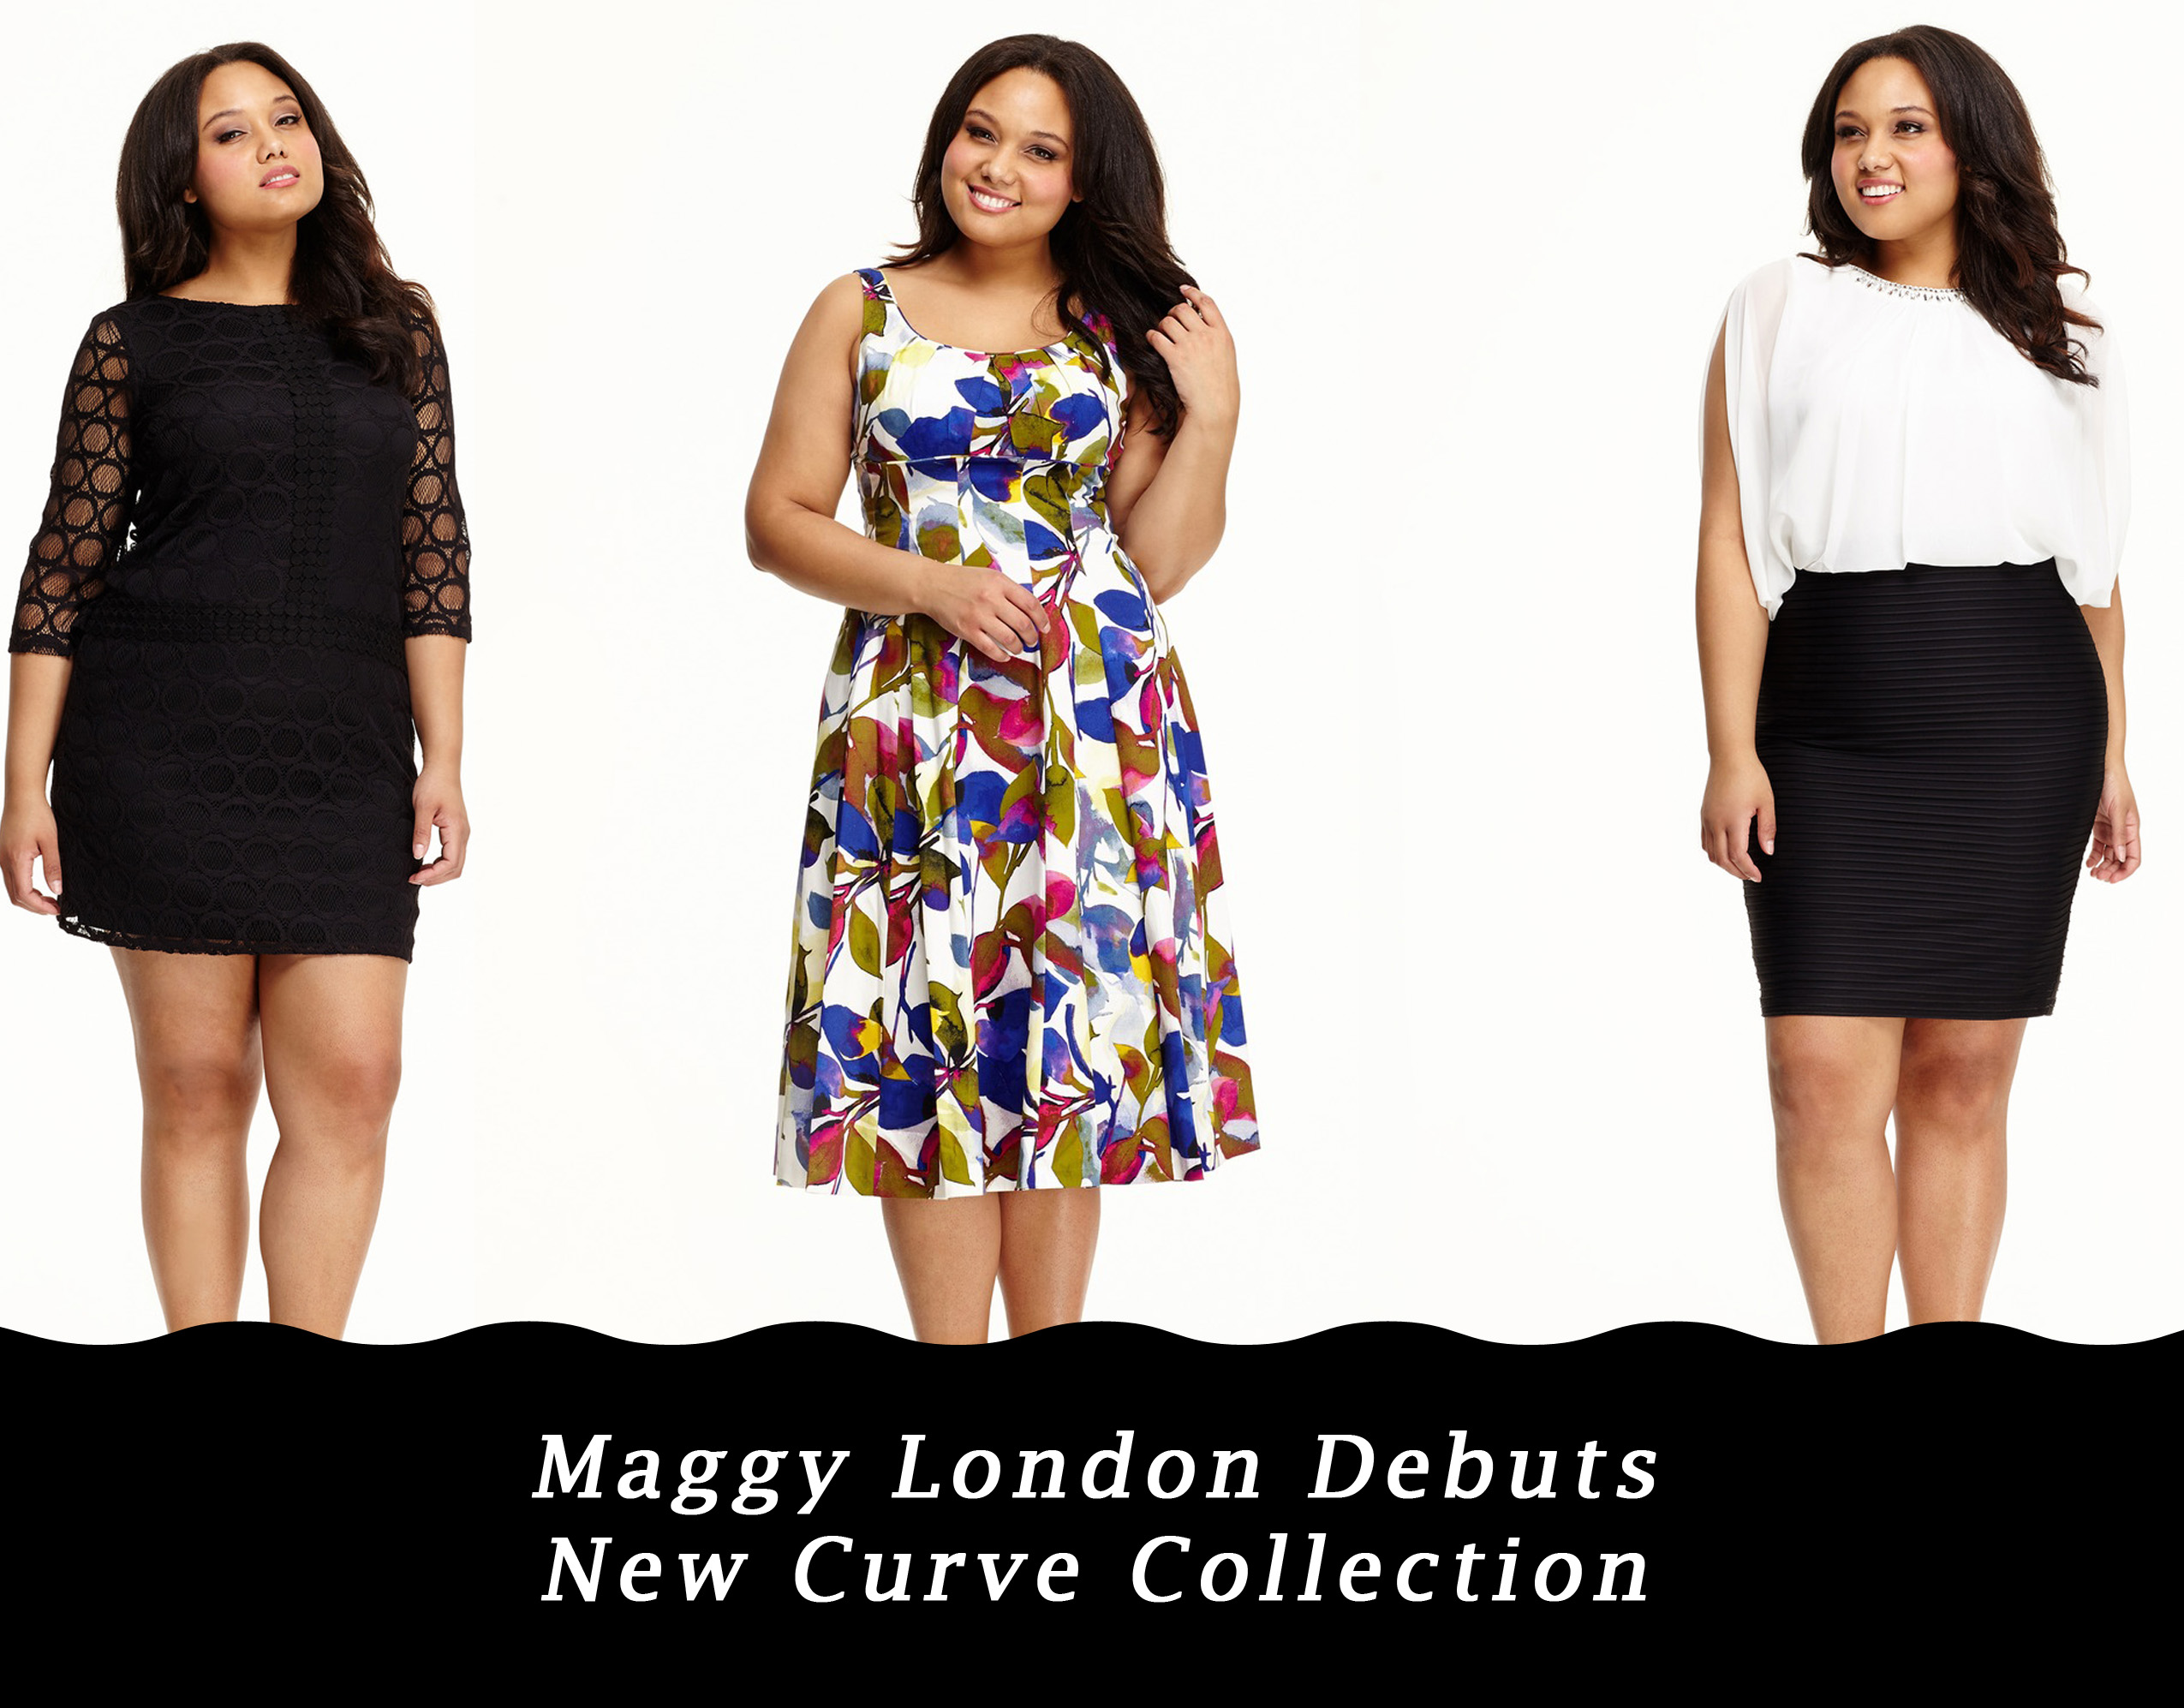 Maggy London Debuts Their New Curve Collection Featuring ...